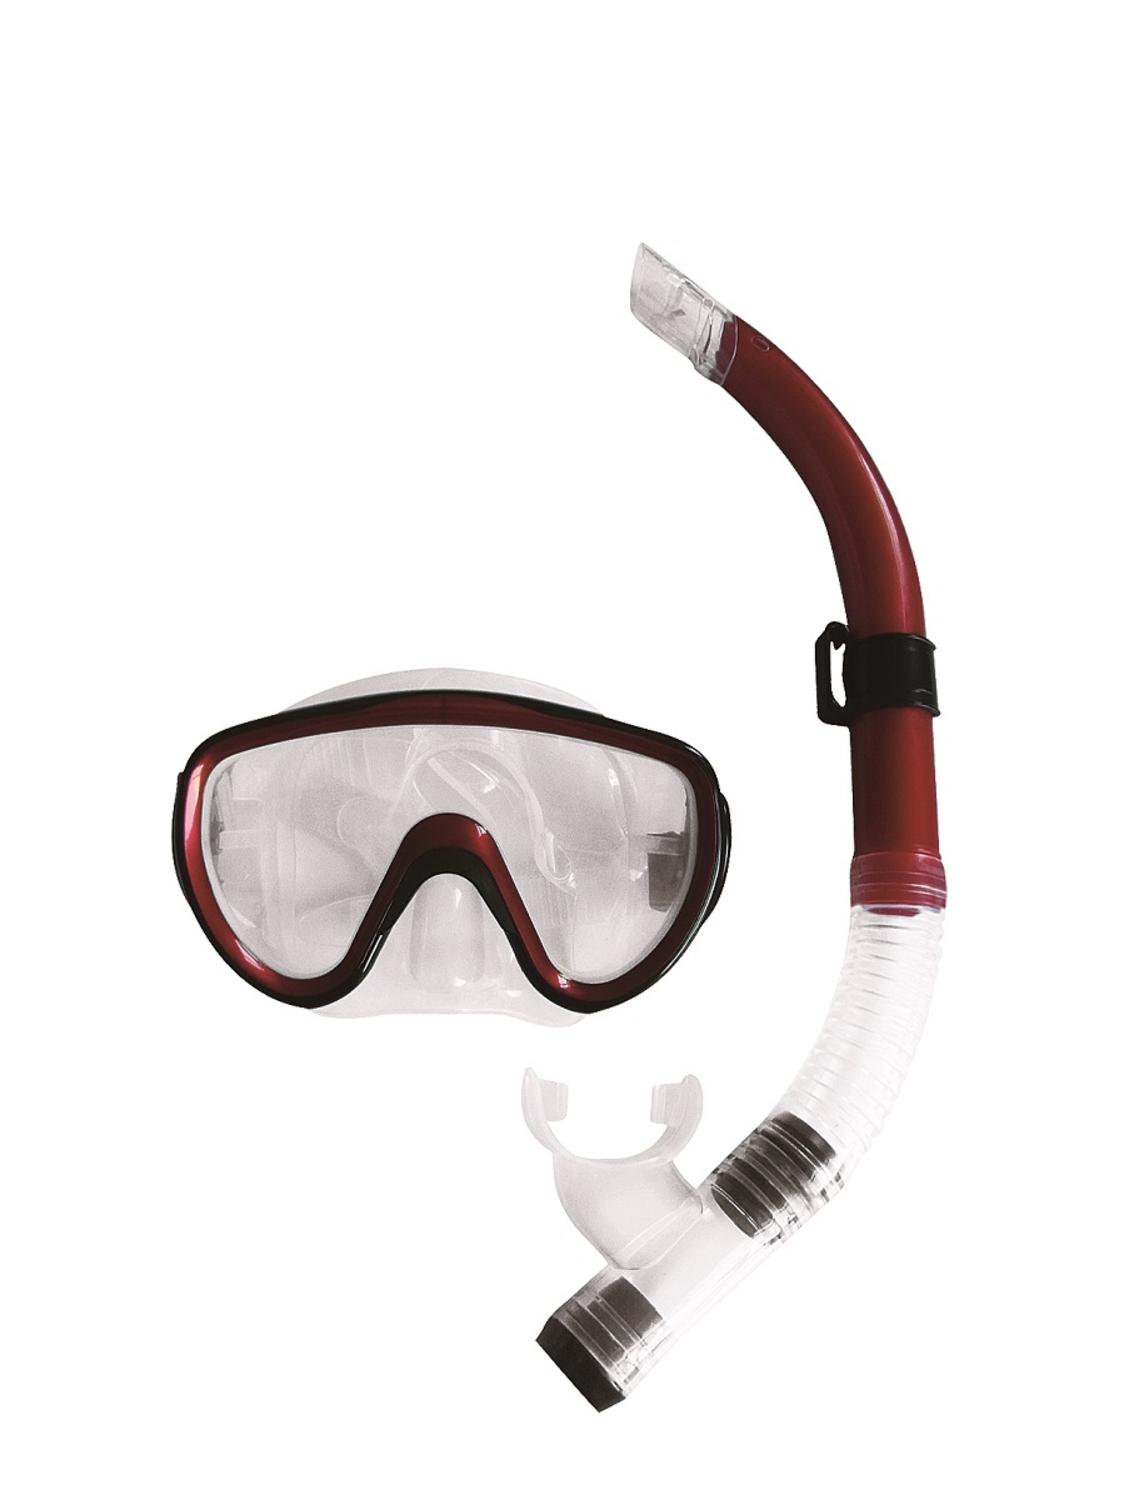 Burgundy-Red, Black and Clear Zray Teen Young Adult Scuba Mask and Snorkel Dive Set by Pool Central